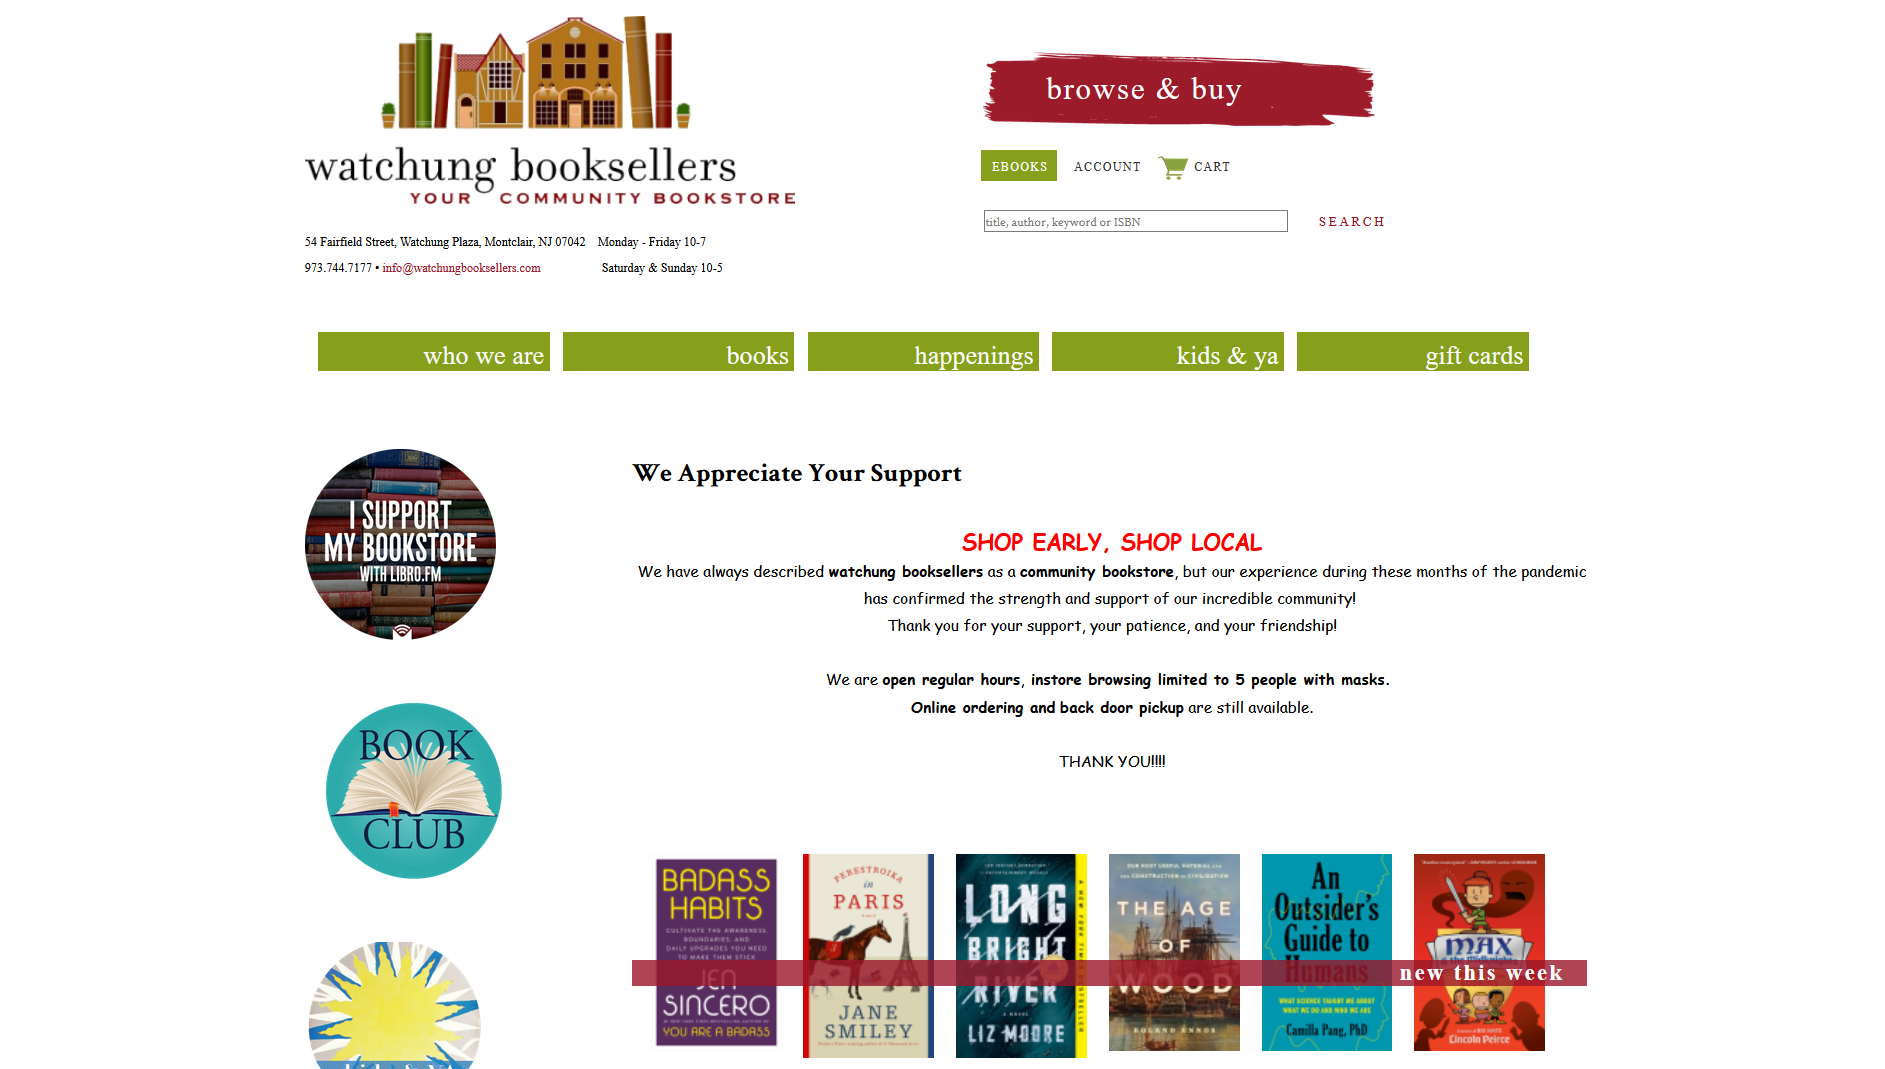 Watchung Booksellers IndieCommerce Home Page